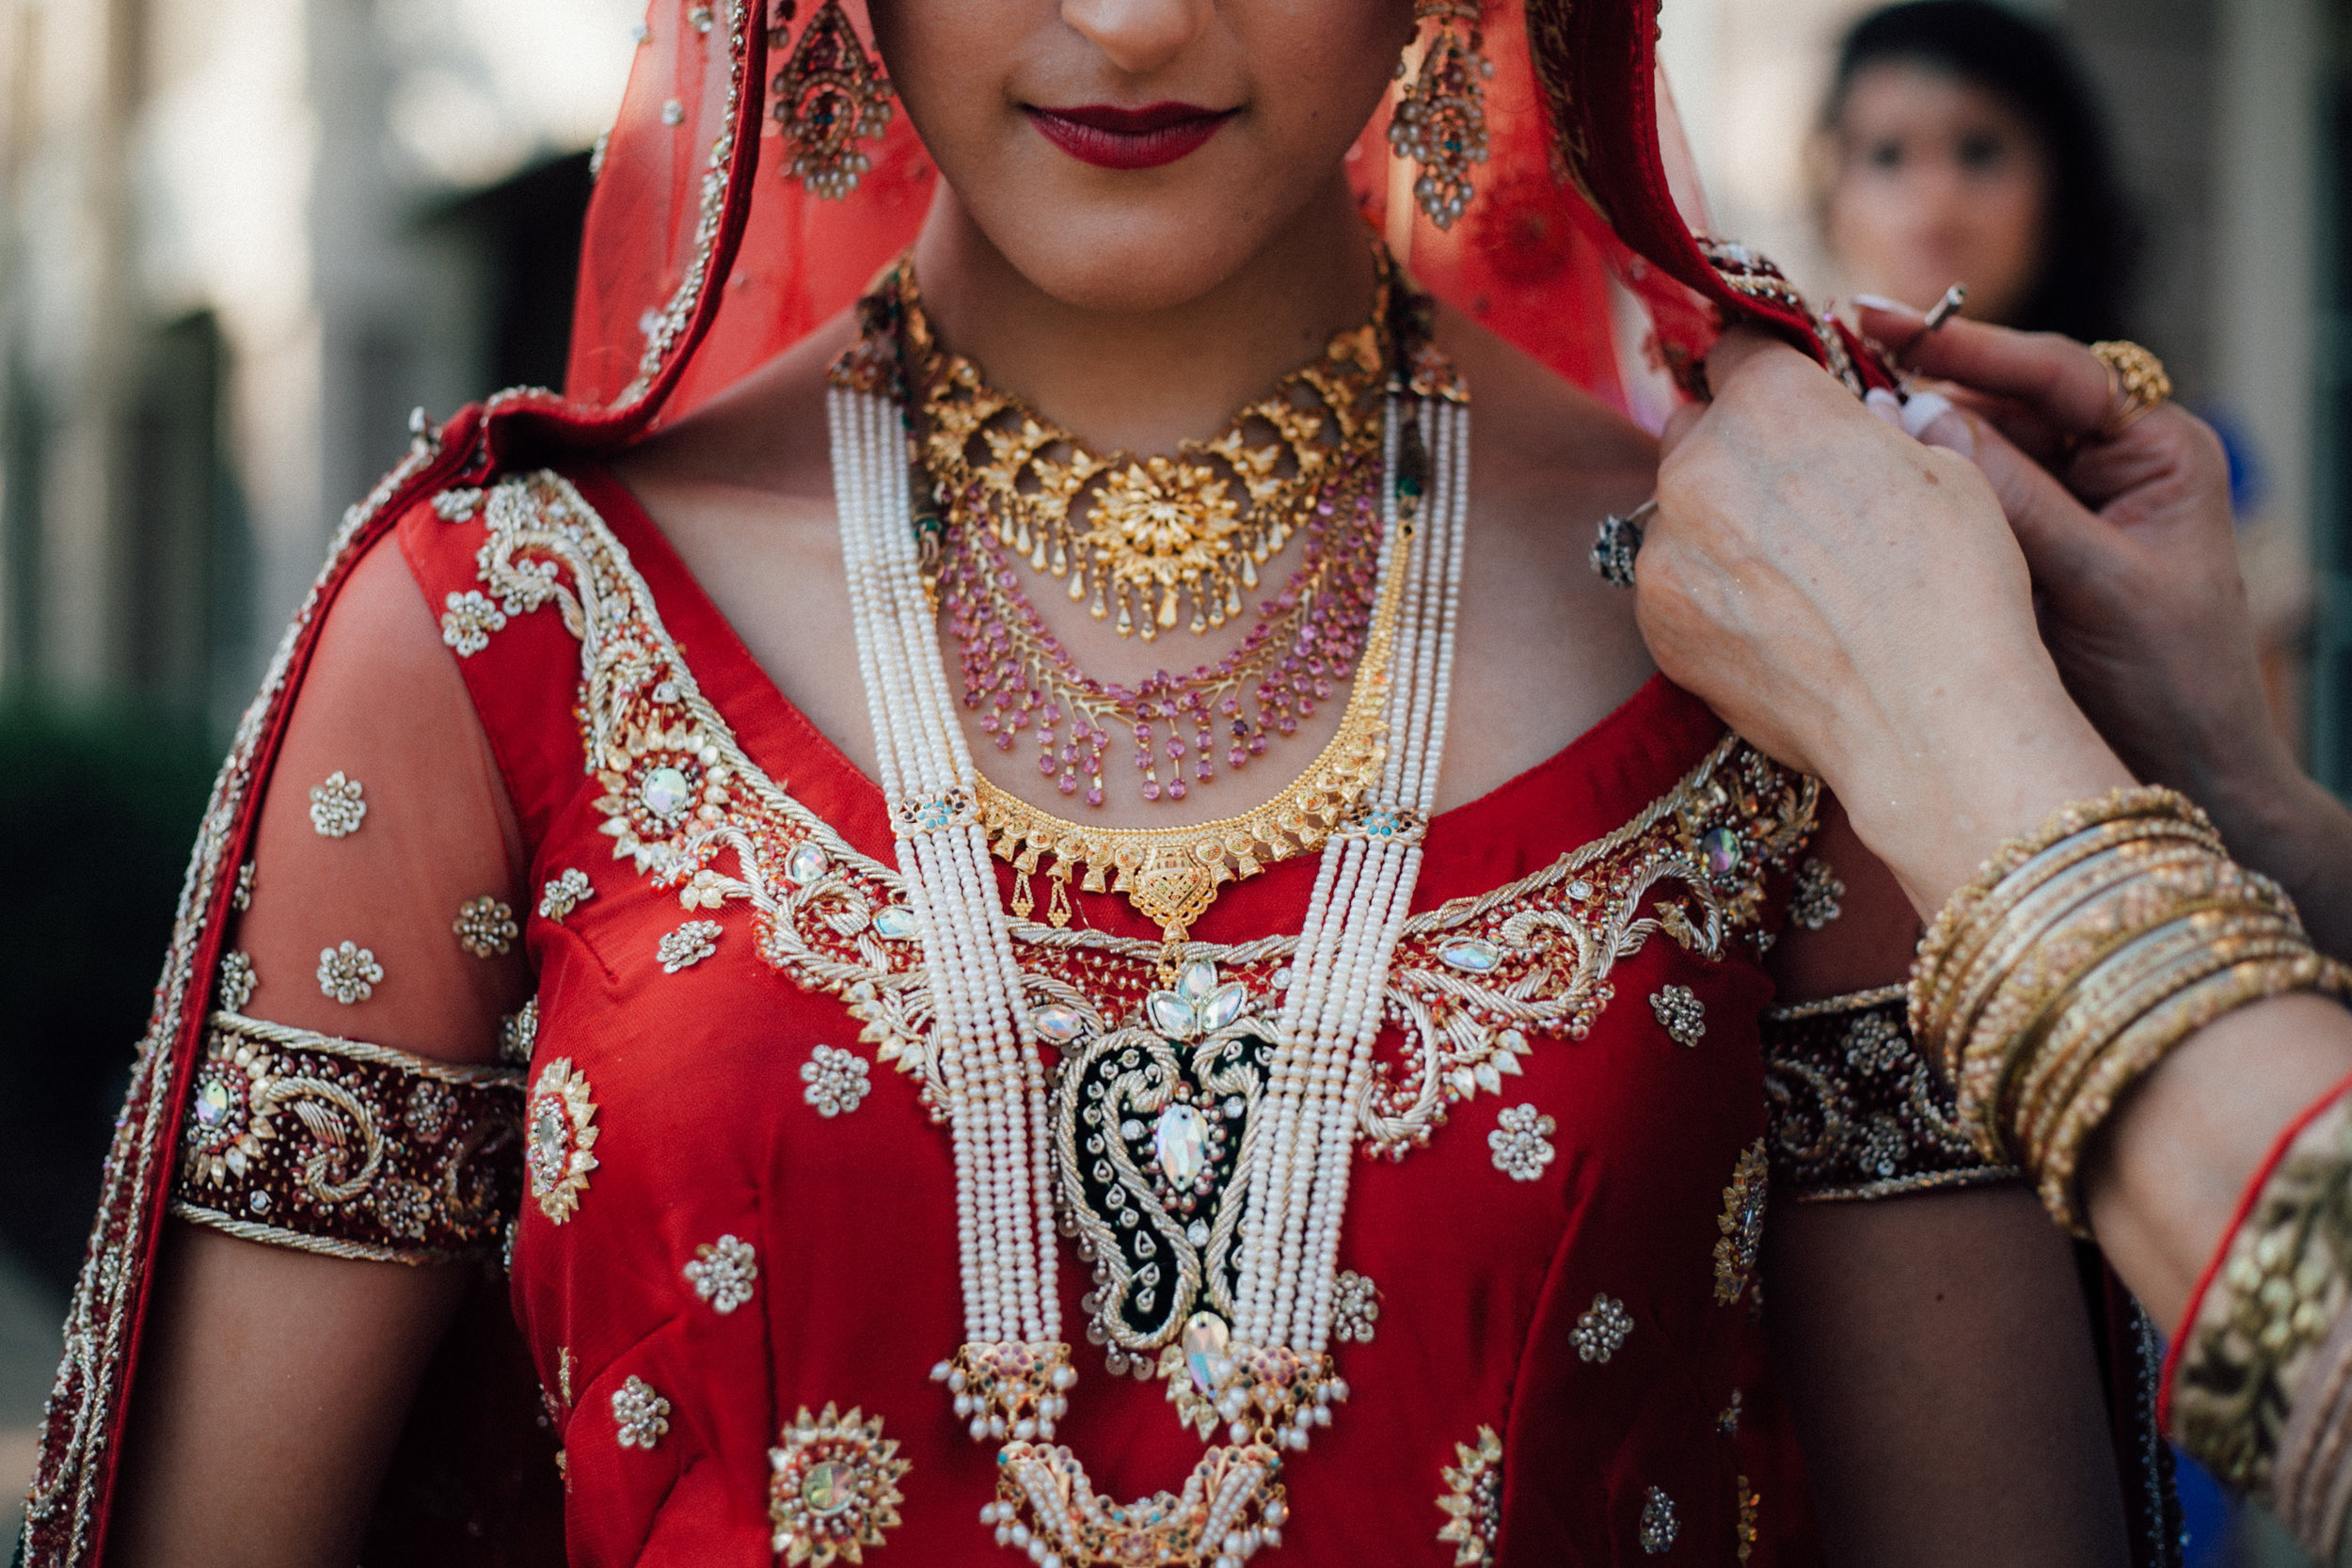 The bride and her Lehenga dress